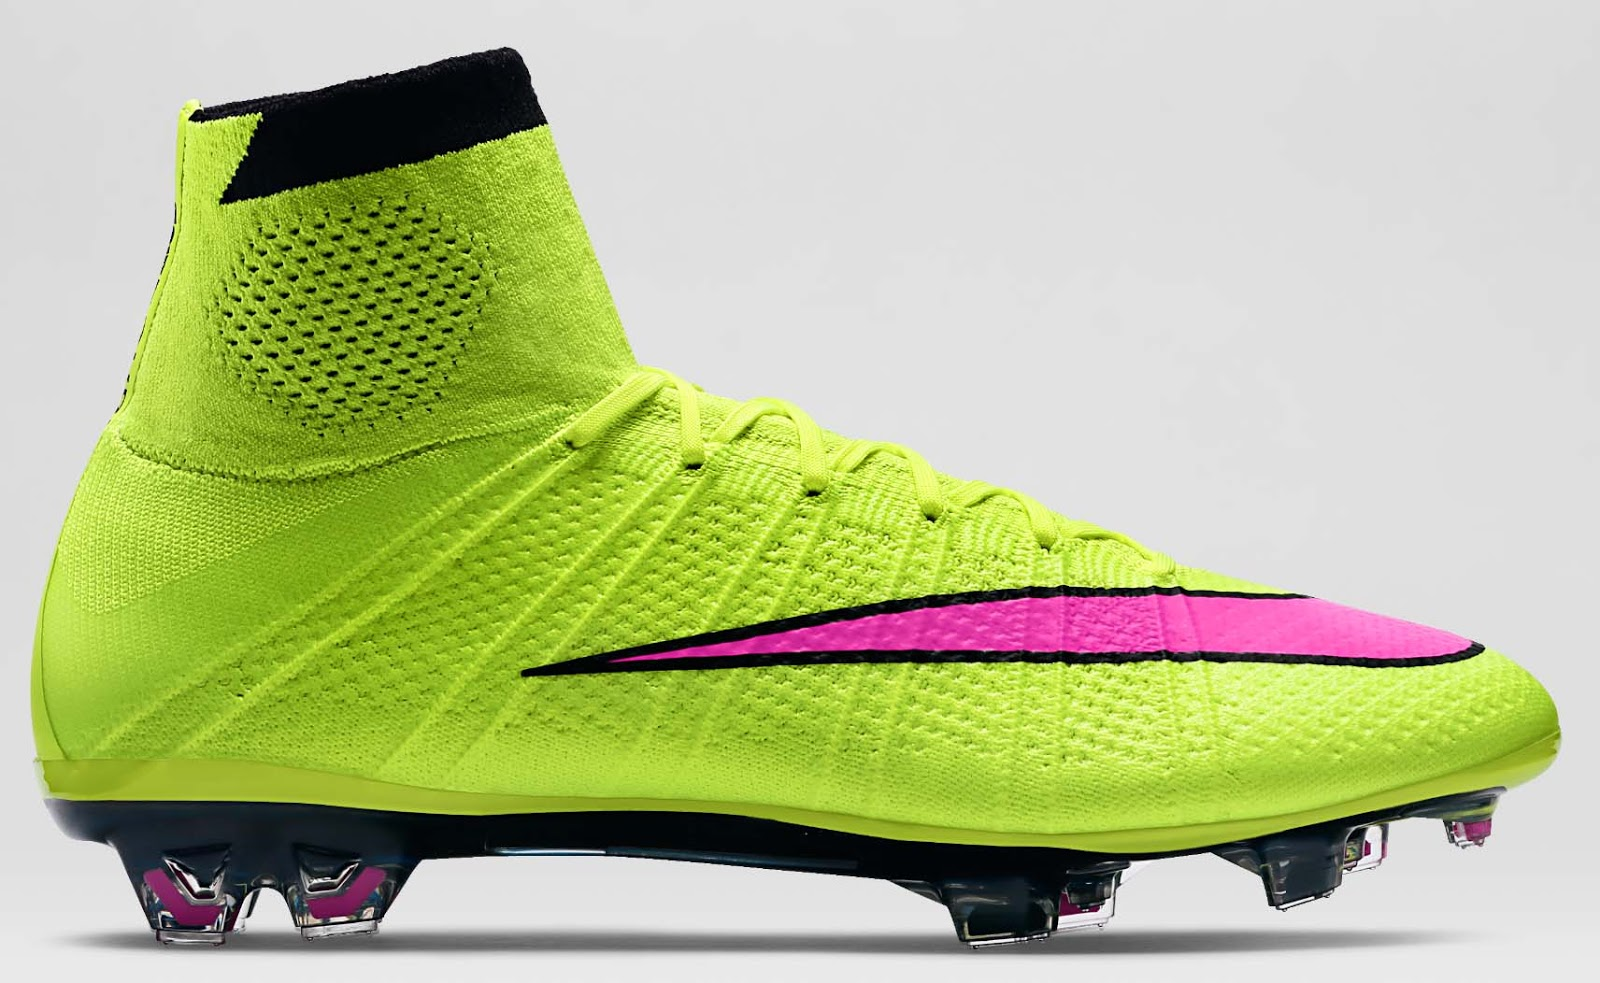 Nike Superfly 2015